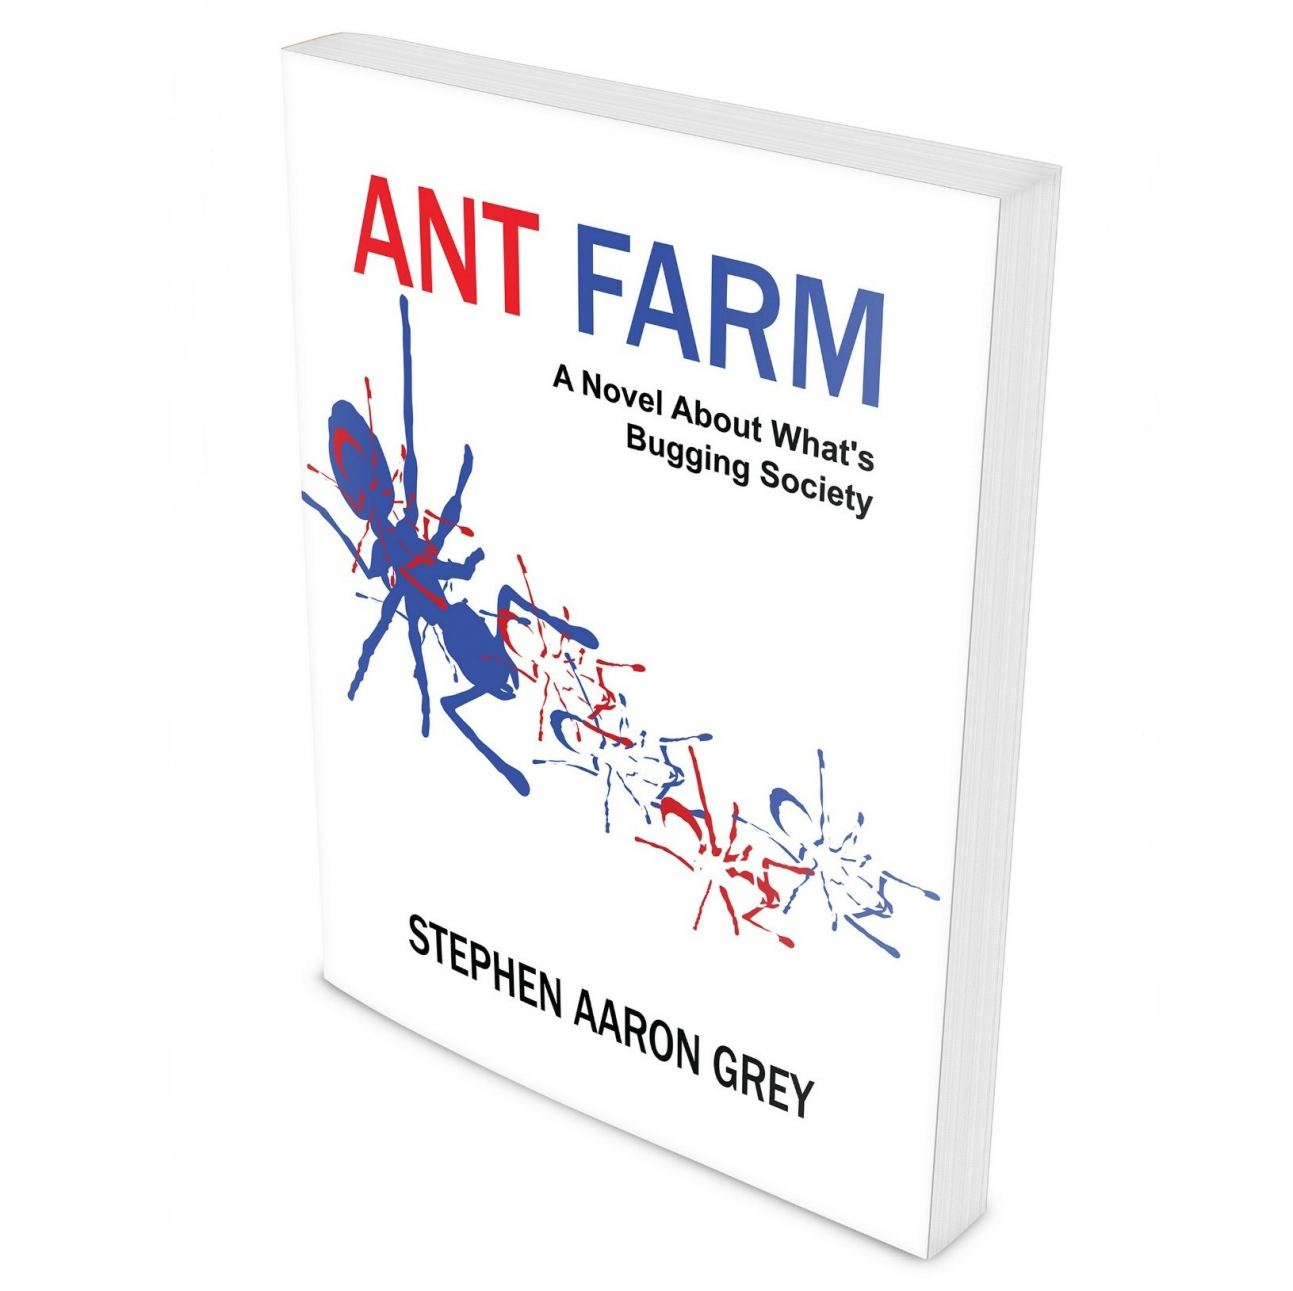 """Ant Farm is about all kinds of oppression."" - Stephen Aaron Grey, author"